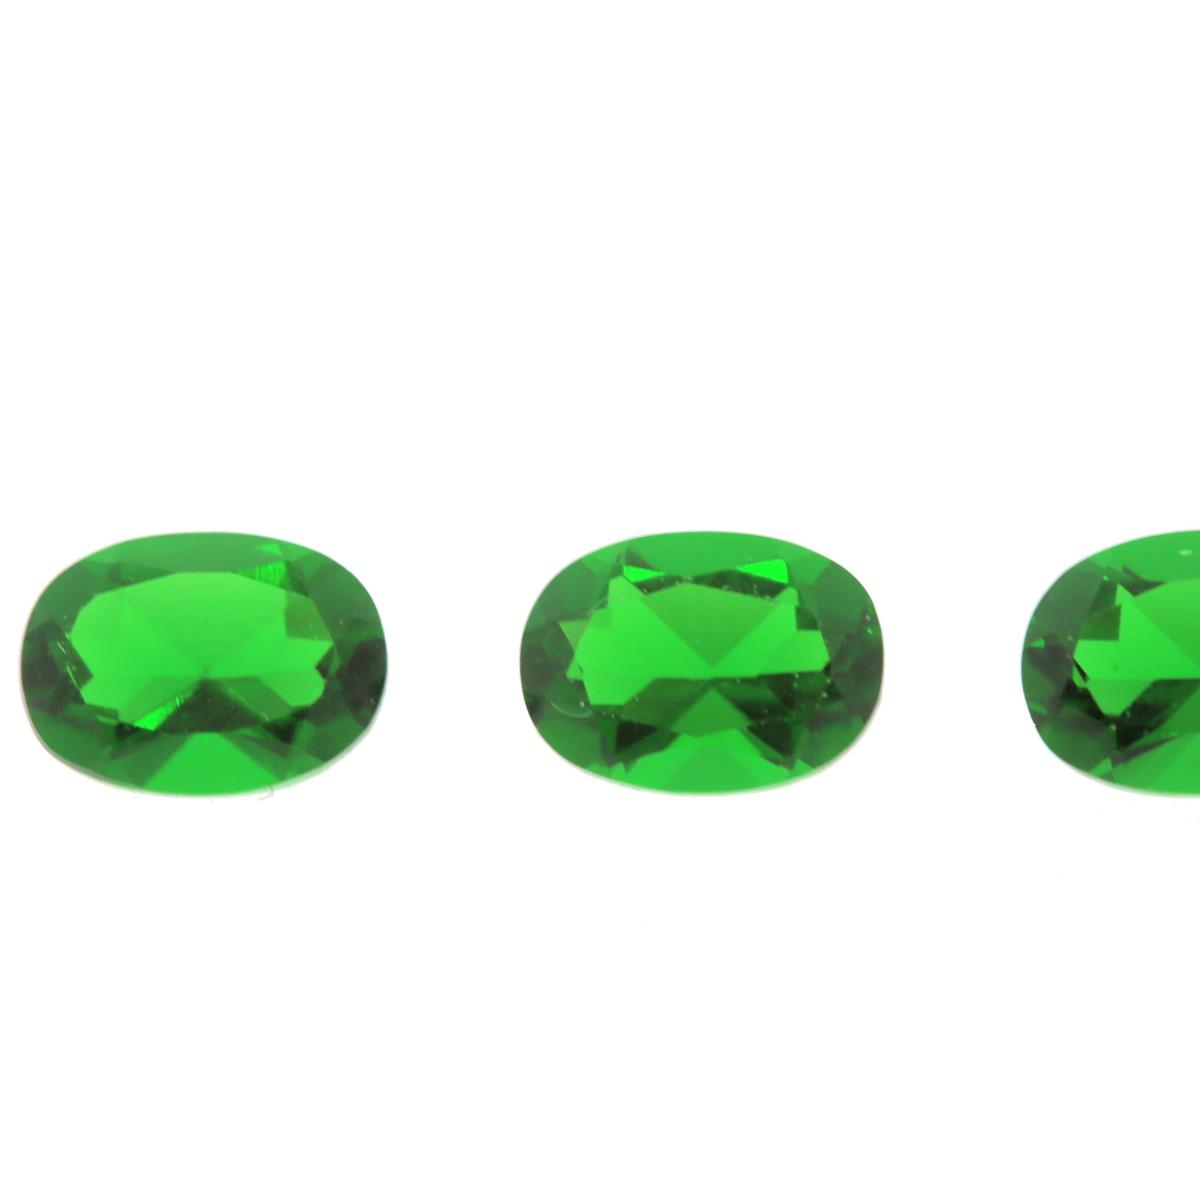 Synthetic Emerald Ferrer 7x5mm